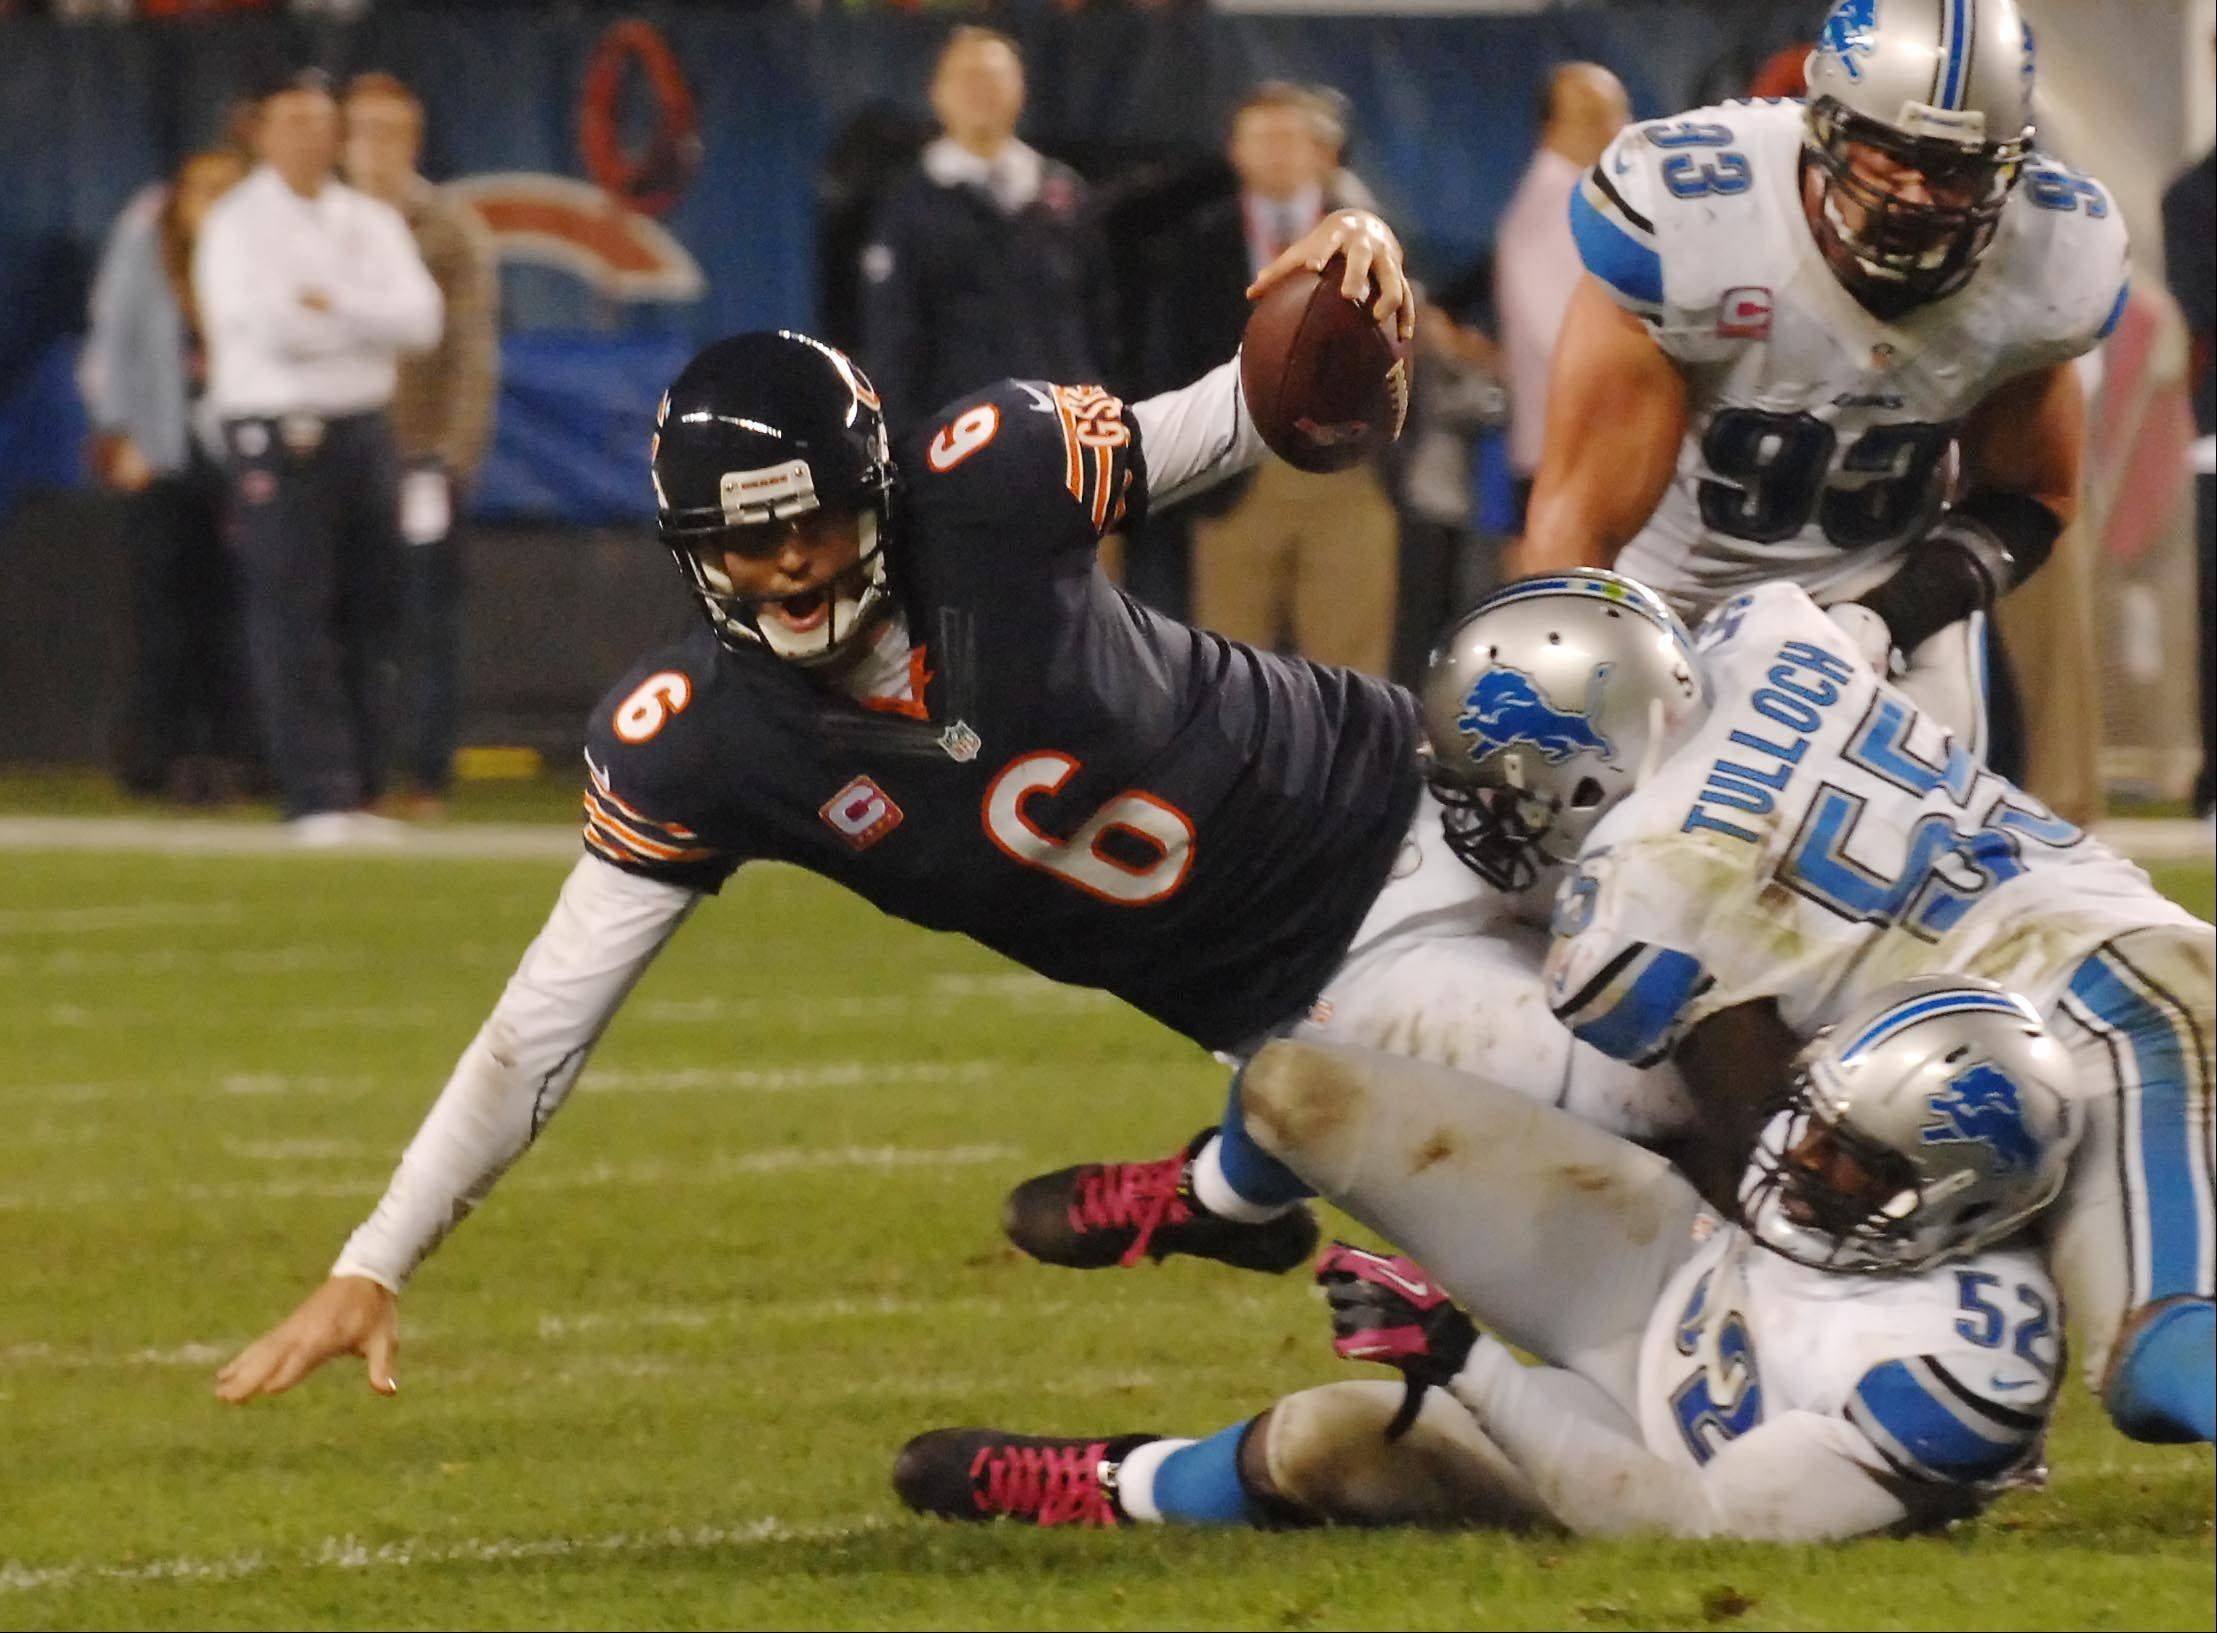 Detroit Lions middle linebacker Stephen Tulloch and outside linebacker Justin Durant sack Chicago Bears quarterback Jay Cutler in the second quarter at Soldier Field Monday night, forcing a fourth-down field goal attempt that was blocked.